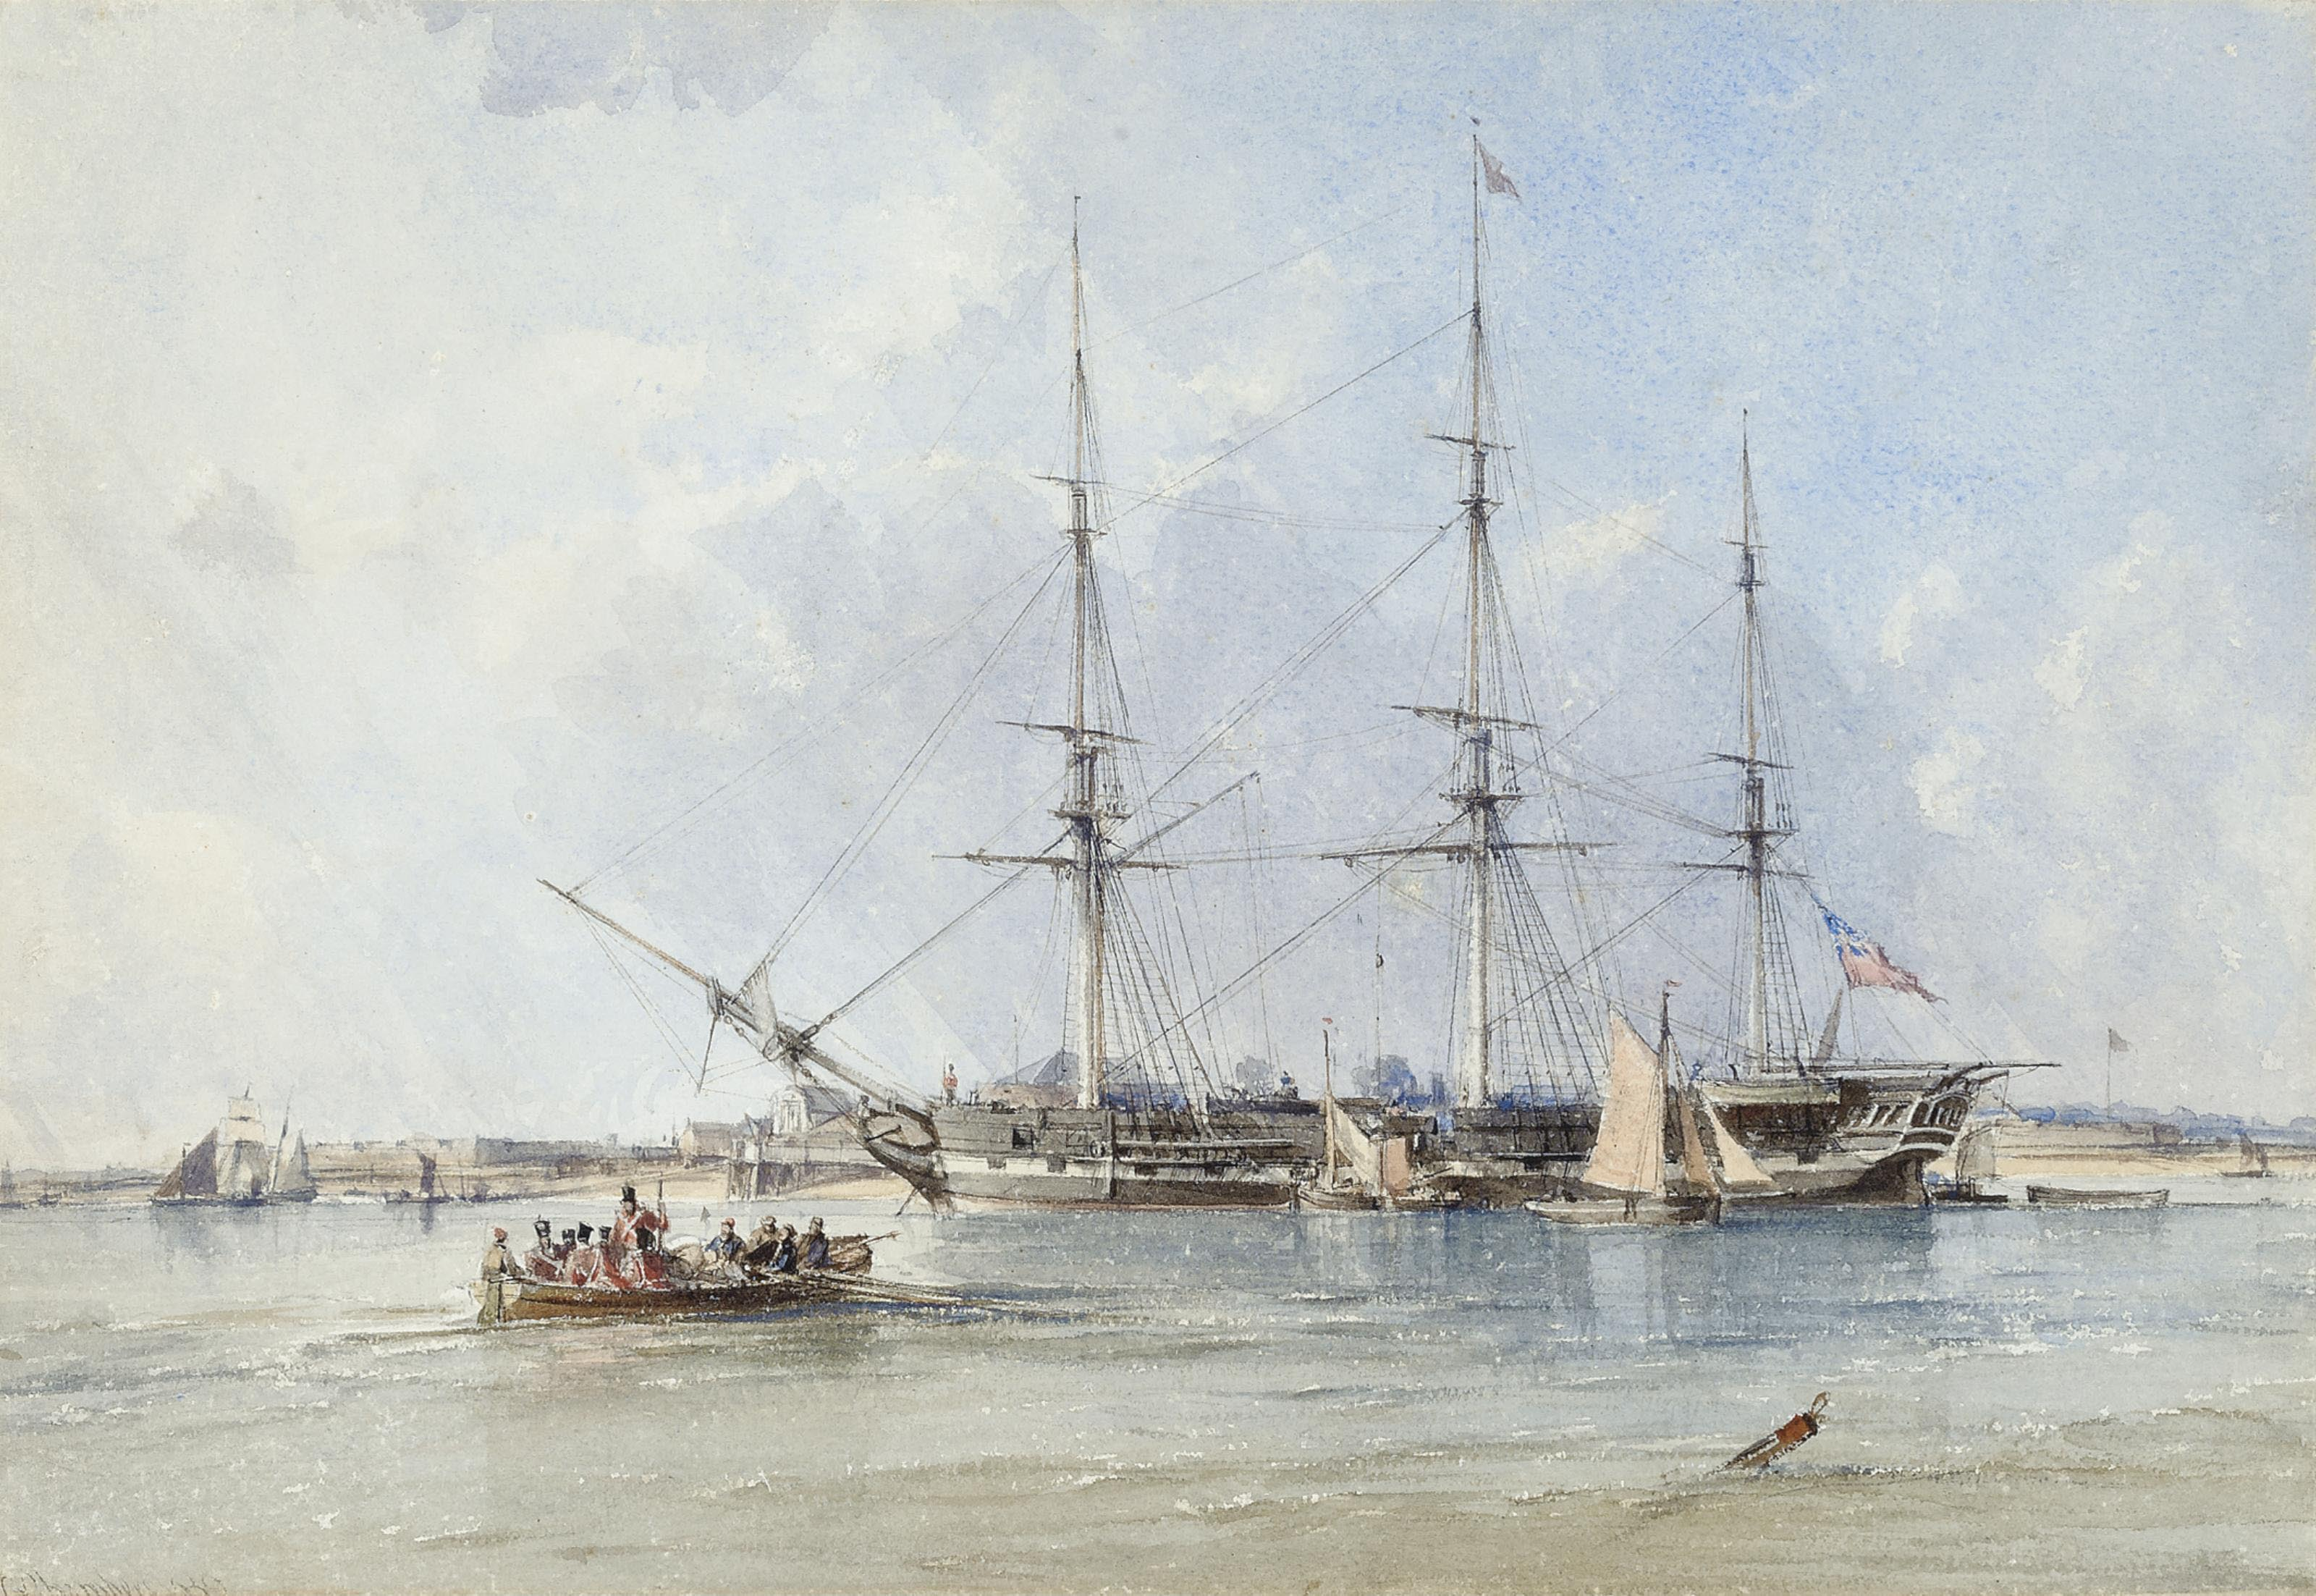 The Blackwall frigate Seringapatam at anchor off Tilbury Fort